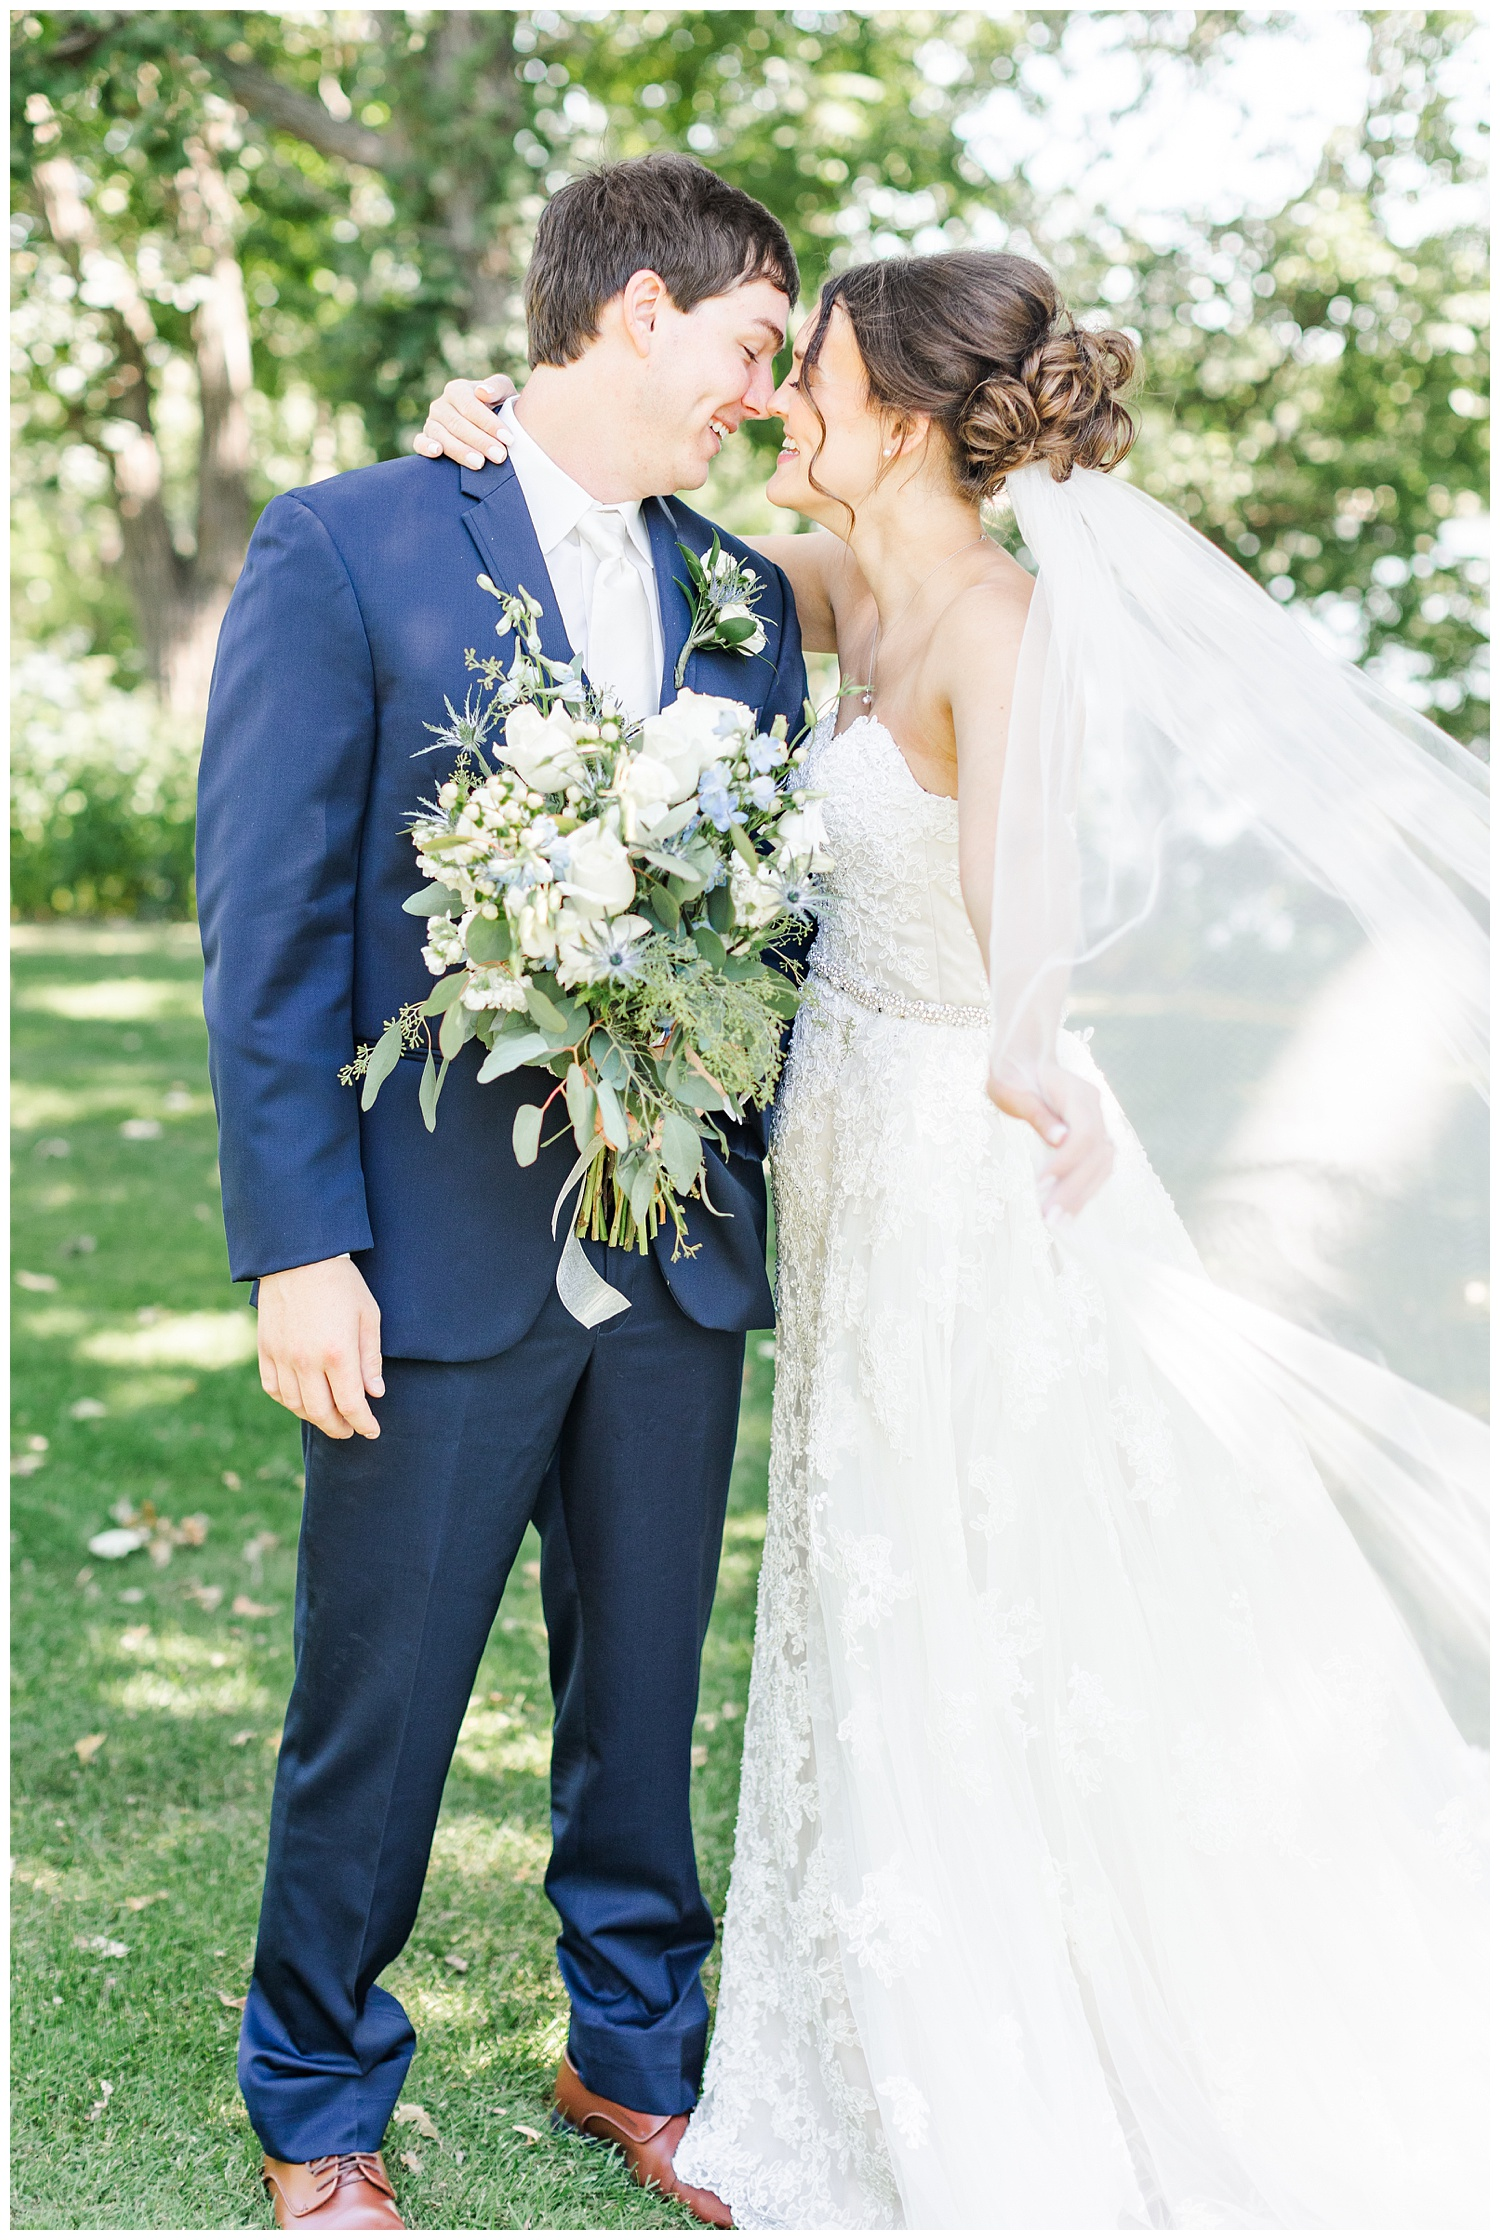 Bride and groom embrace and laugh while her veil blows in the wind   CB Studio